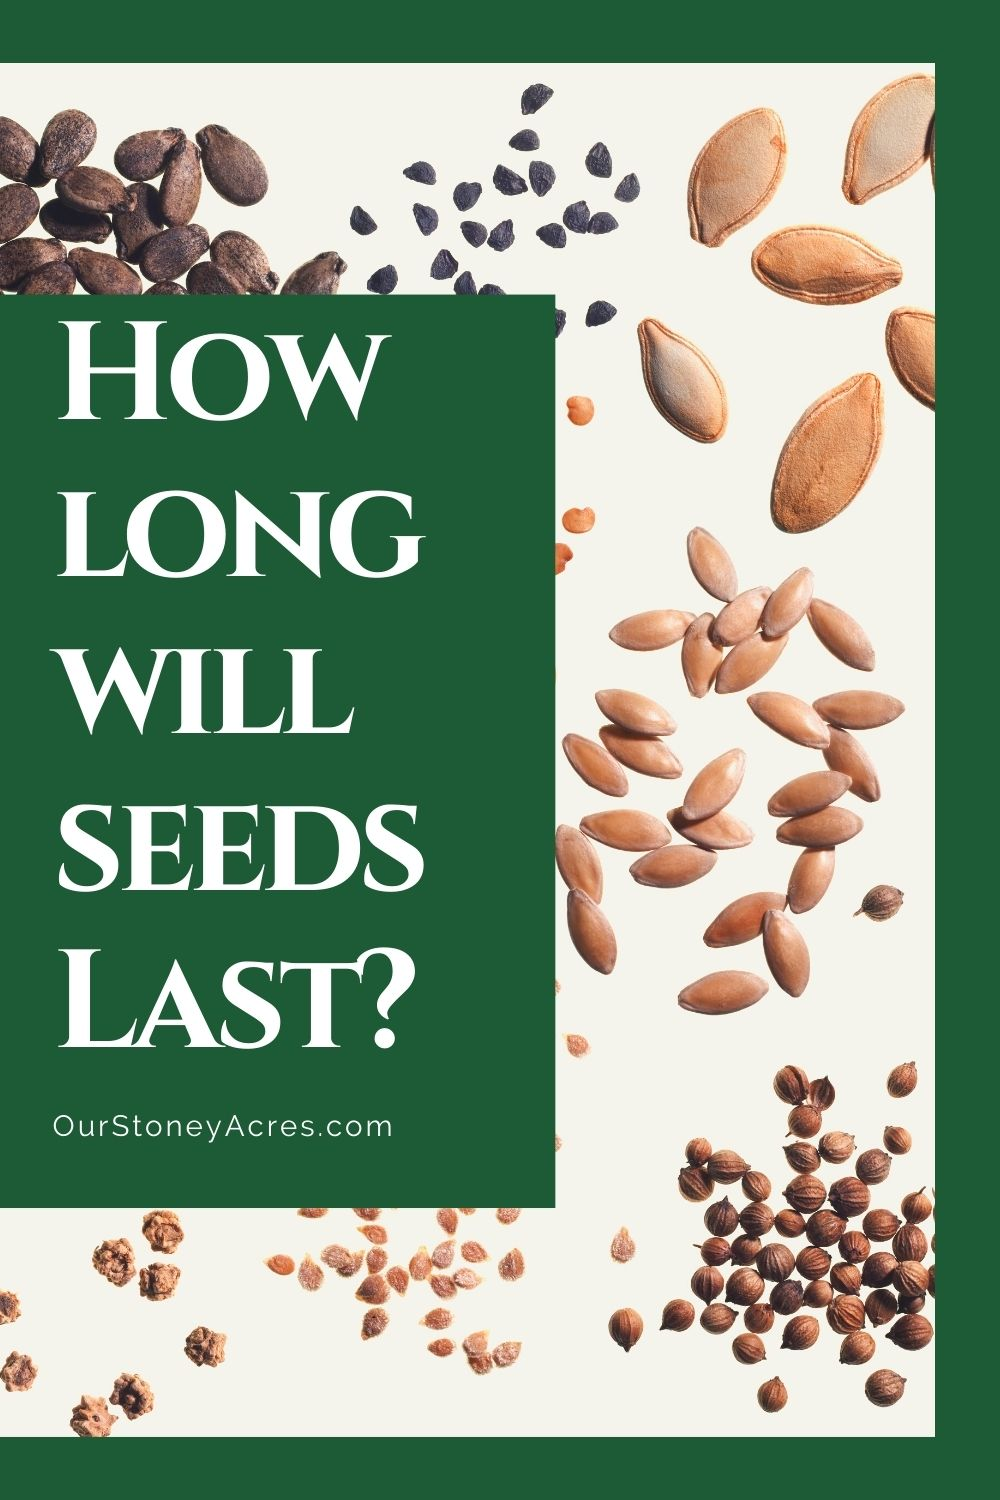 How Long will seeds last?